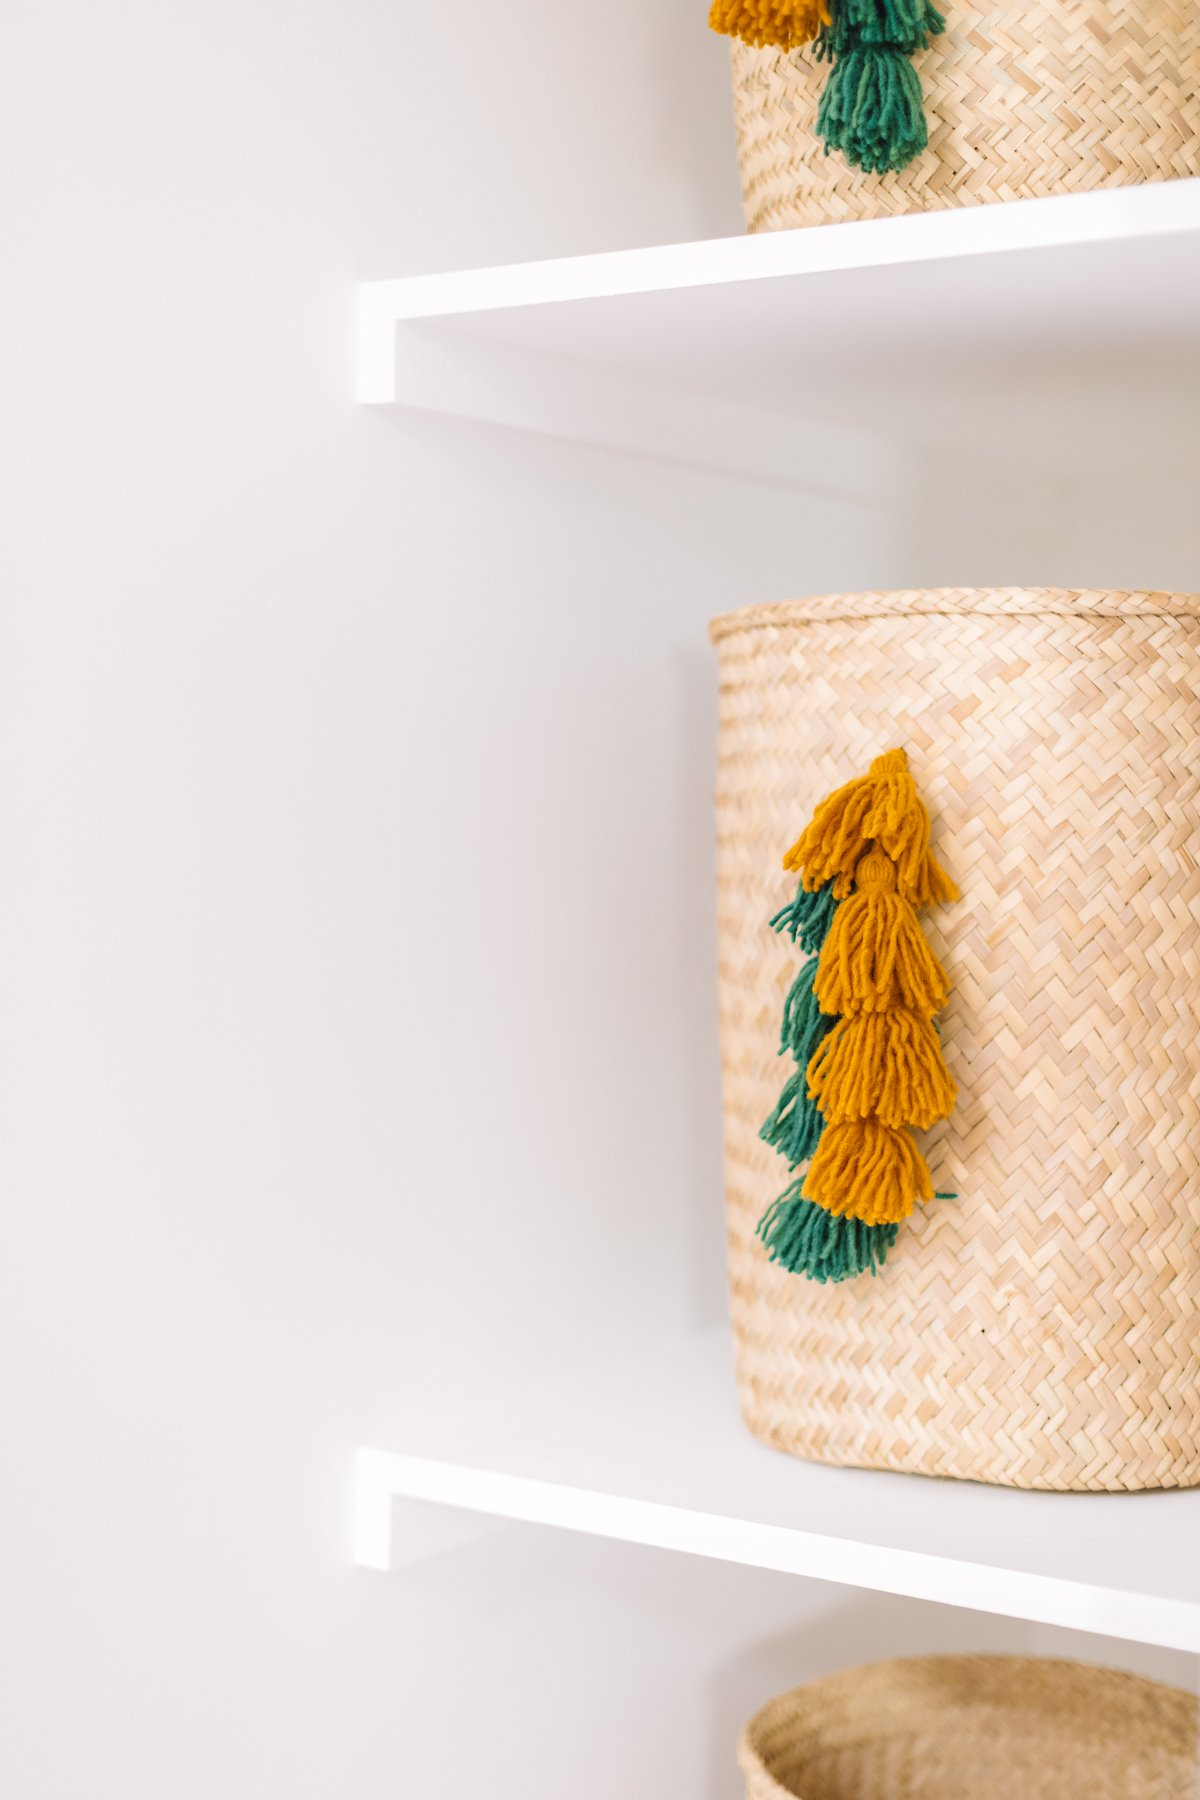 Storage baskets with green and yellow tassels